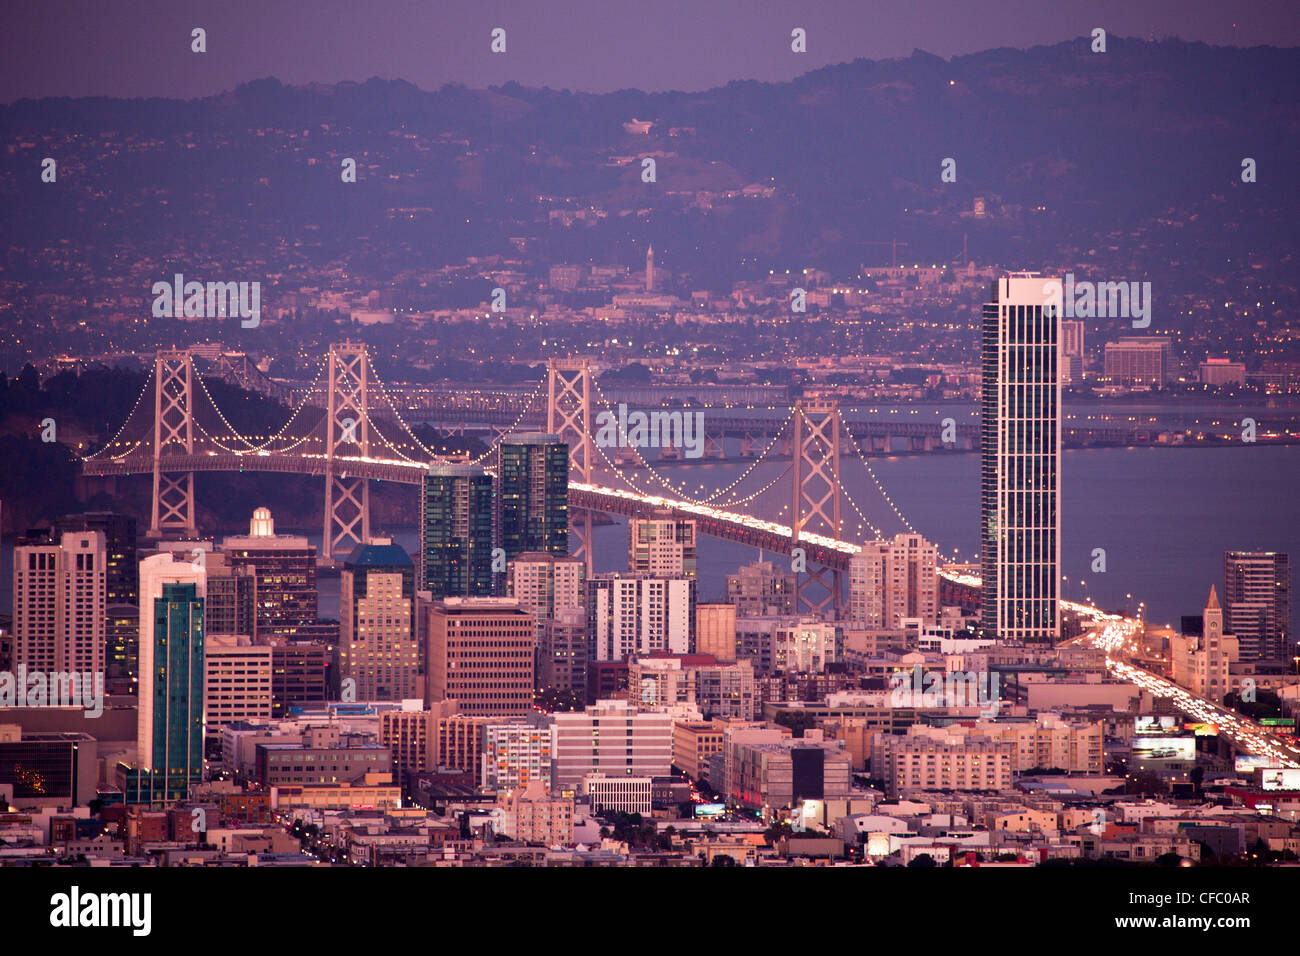 USA, USA, Amerika, Kalifornien, San Francisco, Stadt, Innenstadt, Bay Bridge, Architektur, Bay, downtown, berühmt, Stockbild